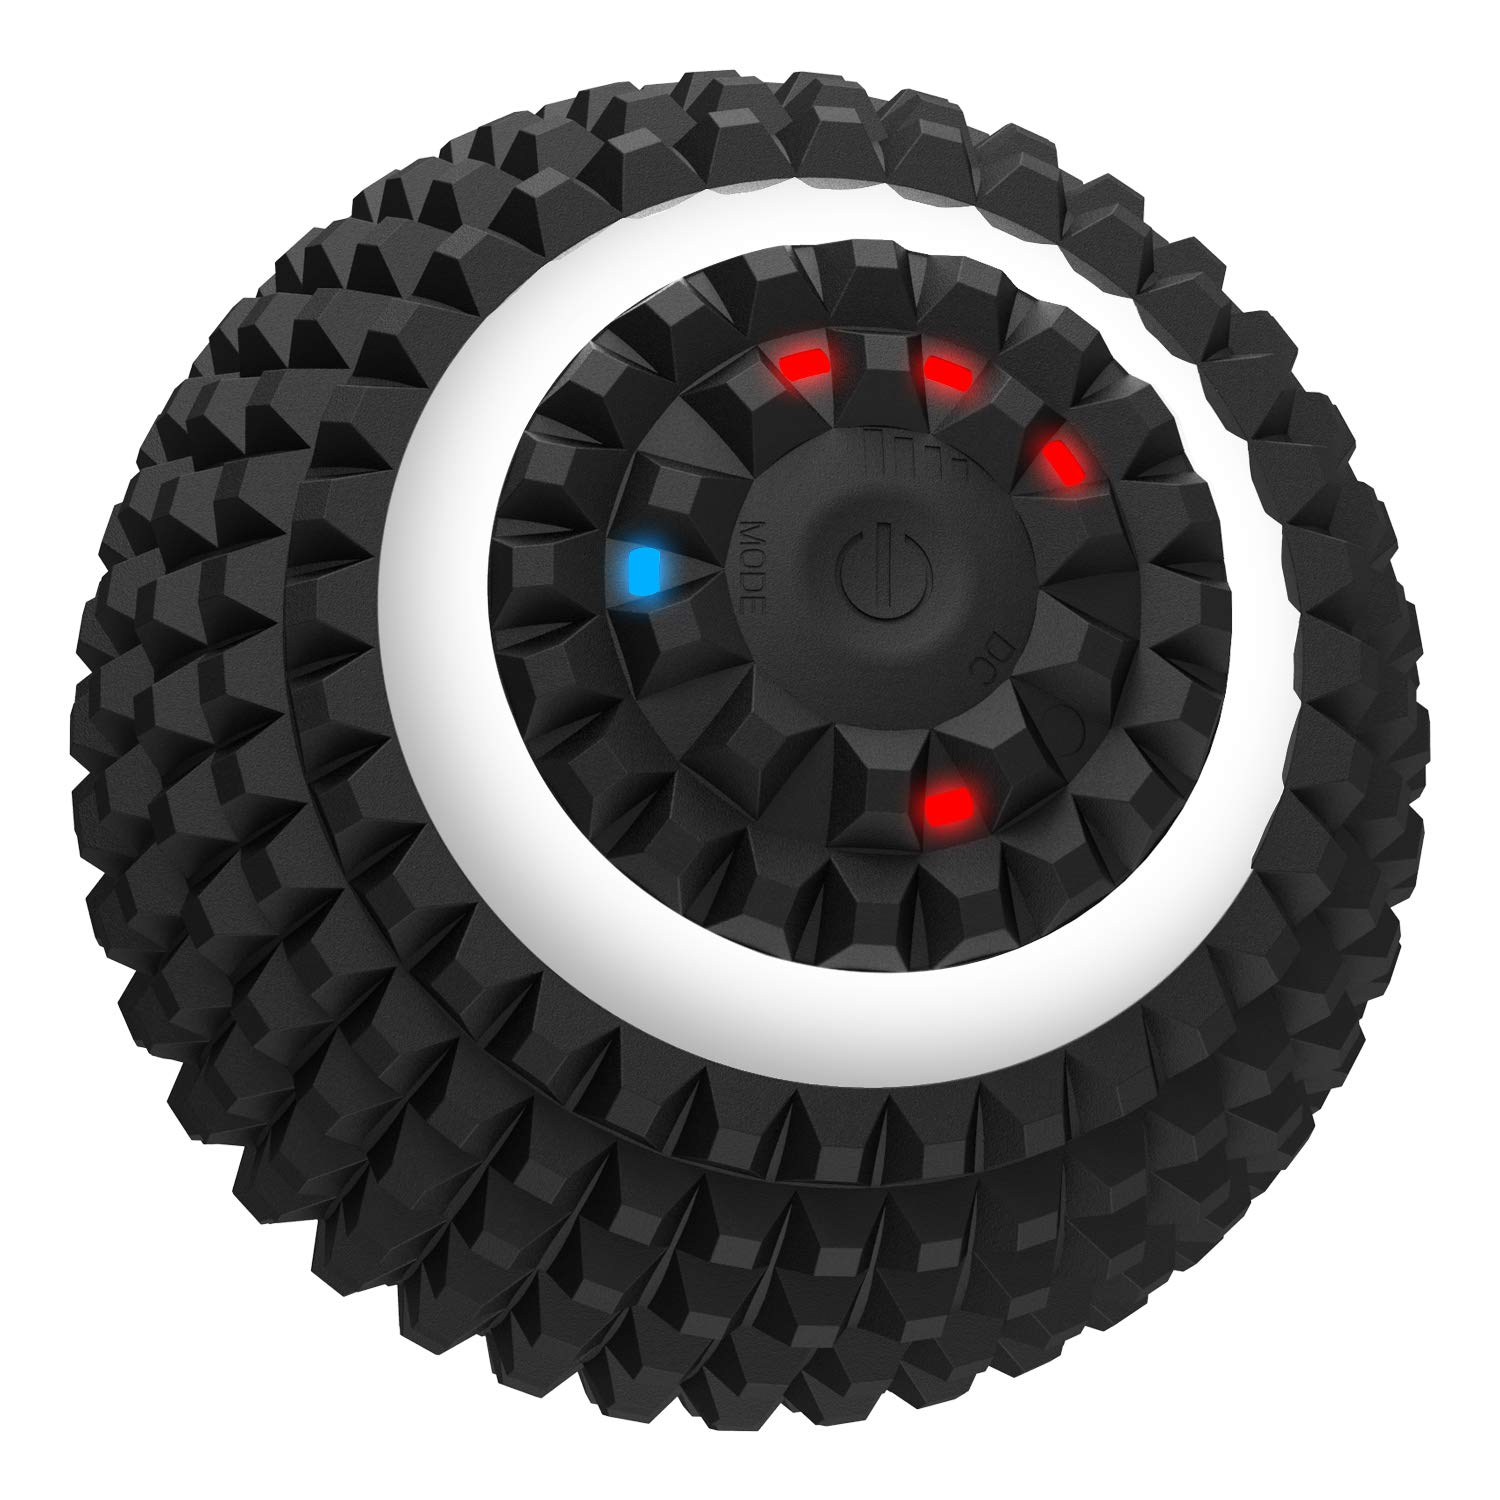 Deep Tissue Electric 4 Speed Washable Vibrating Massage Ball - Training Yoga Fitness Foam Roller, Physical Therapy Ball for Muscle Myofascial Recovery, Leg Neck Arm Body Back Massage Roller (Black) by Cabanana